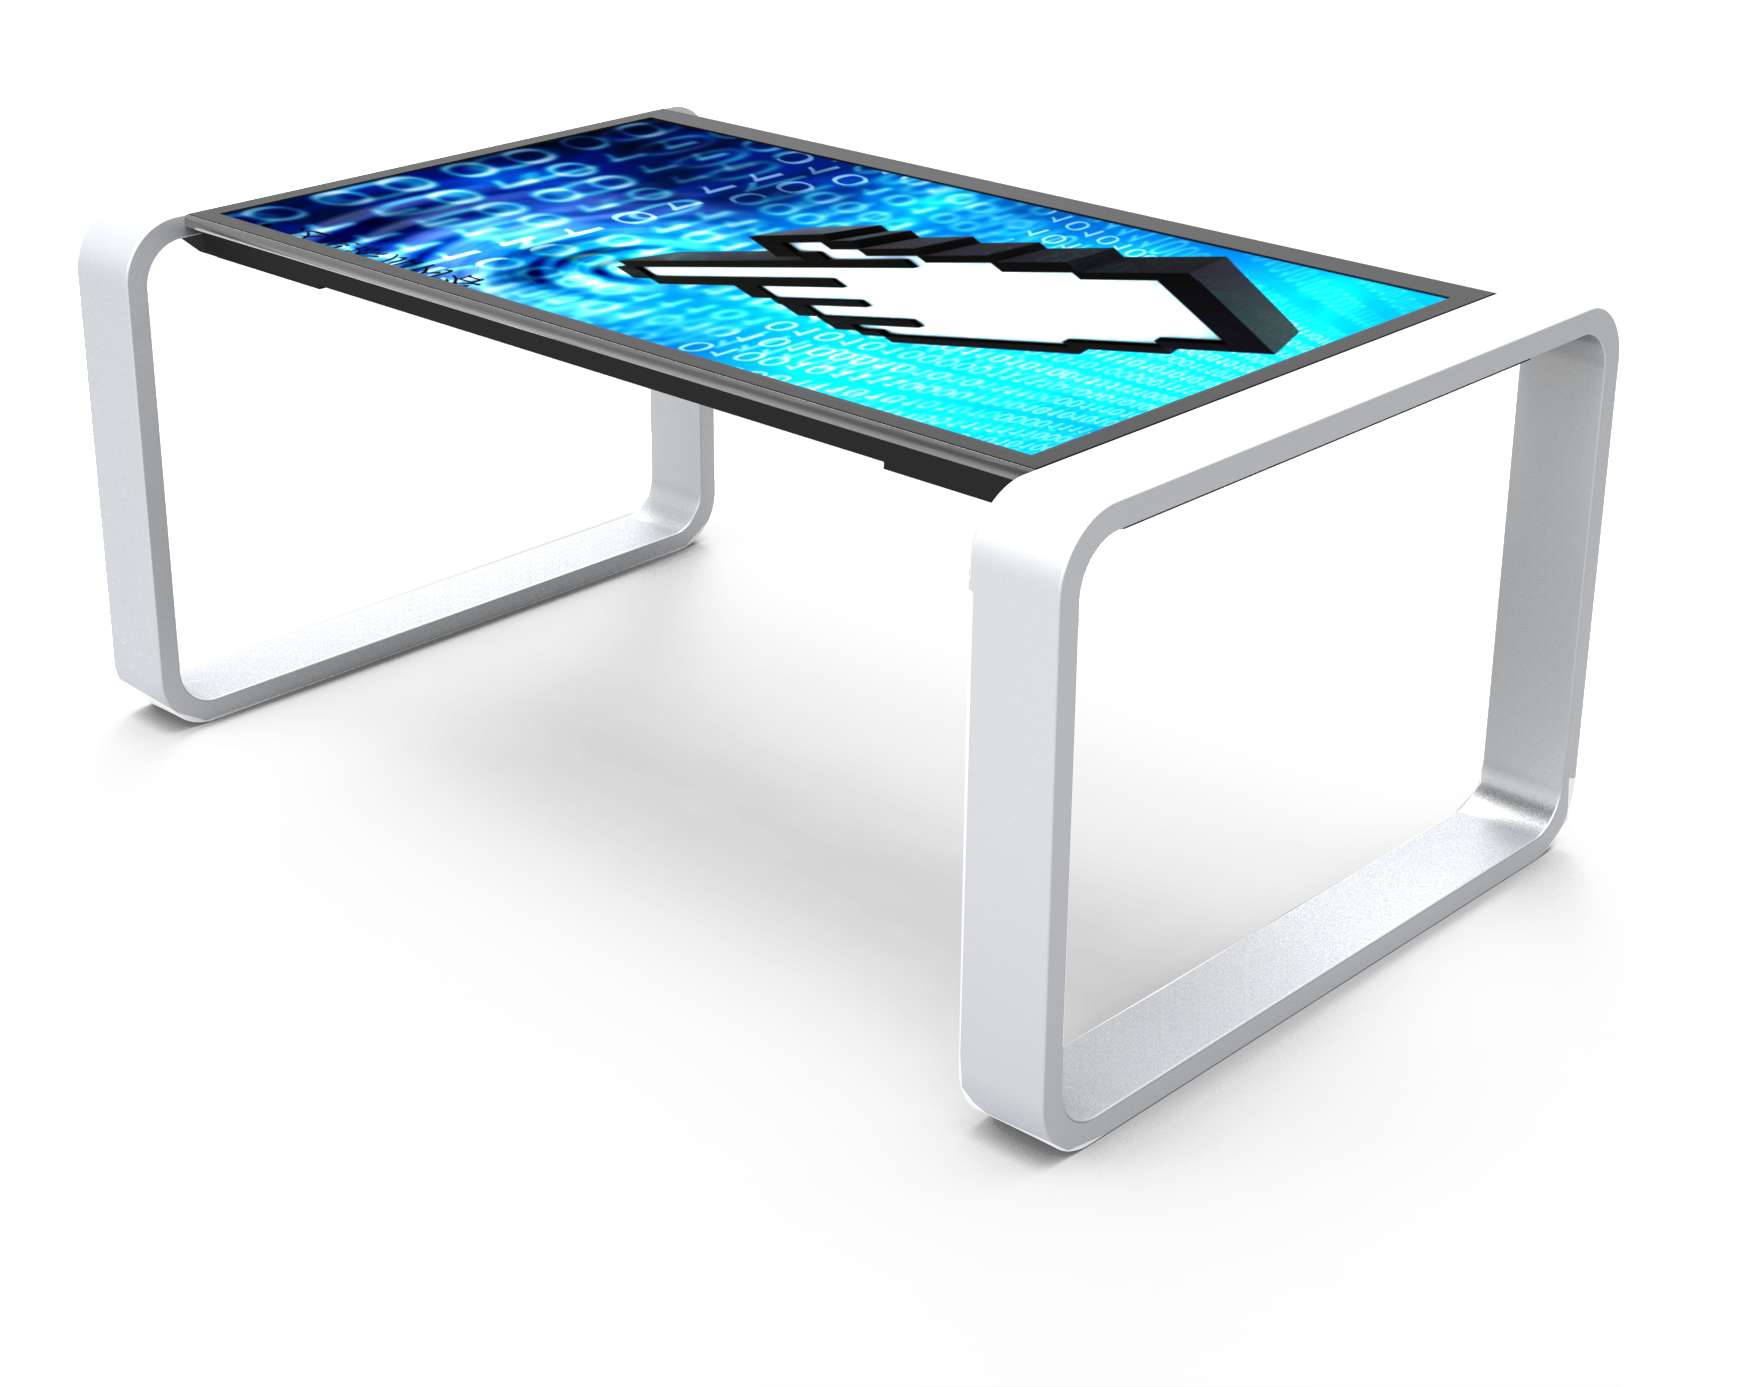 Giant Table Hire - Giant Tables are able to incorporate our AI digital signage software platform……coming soon